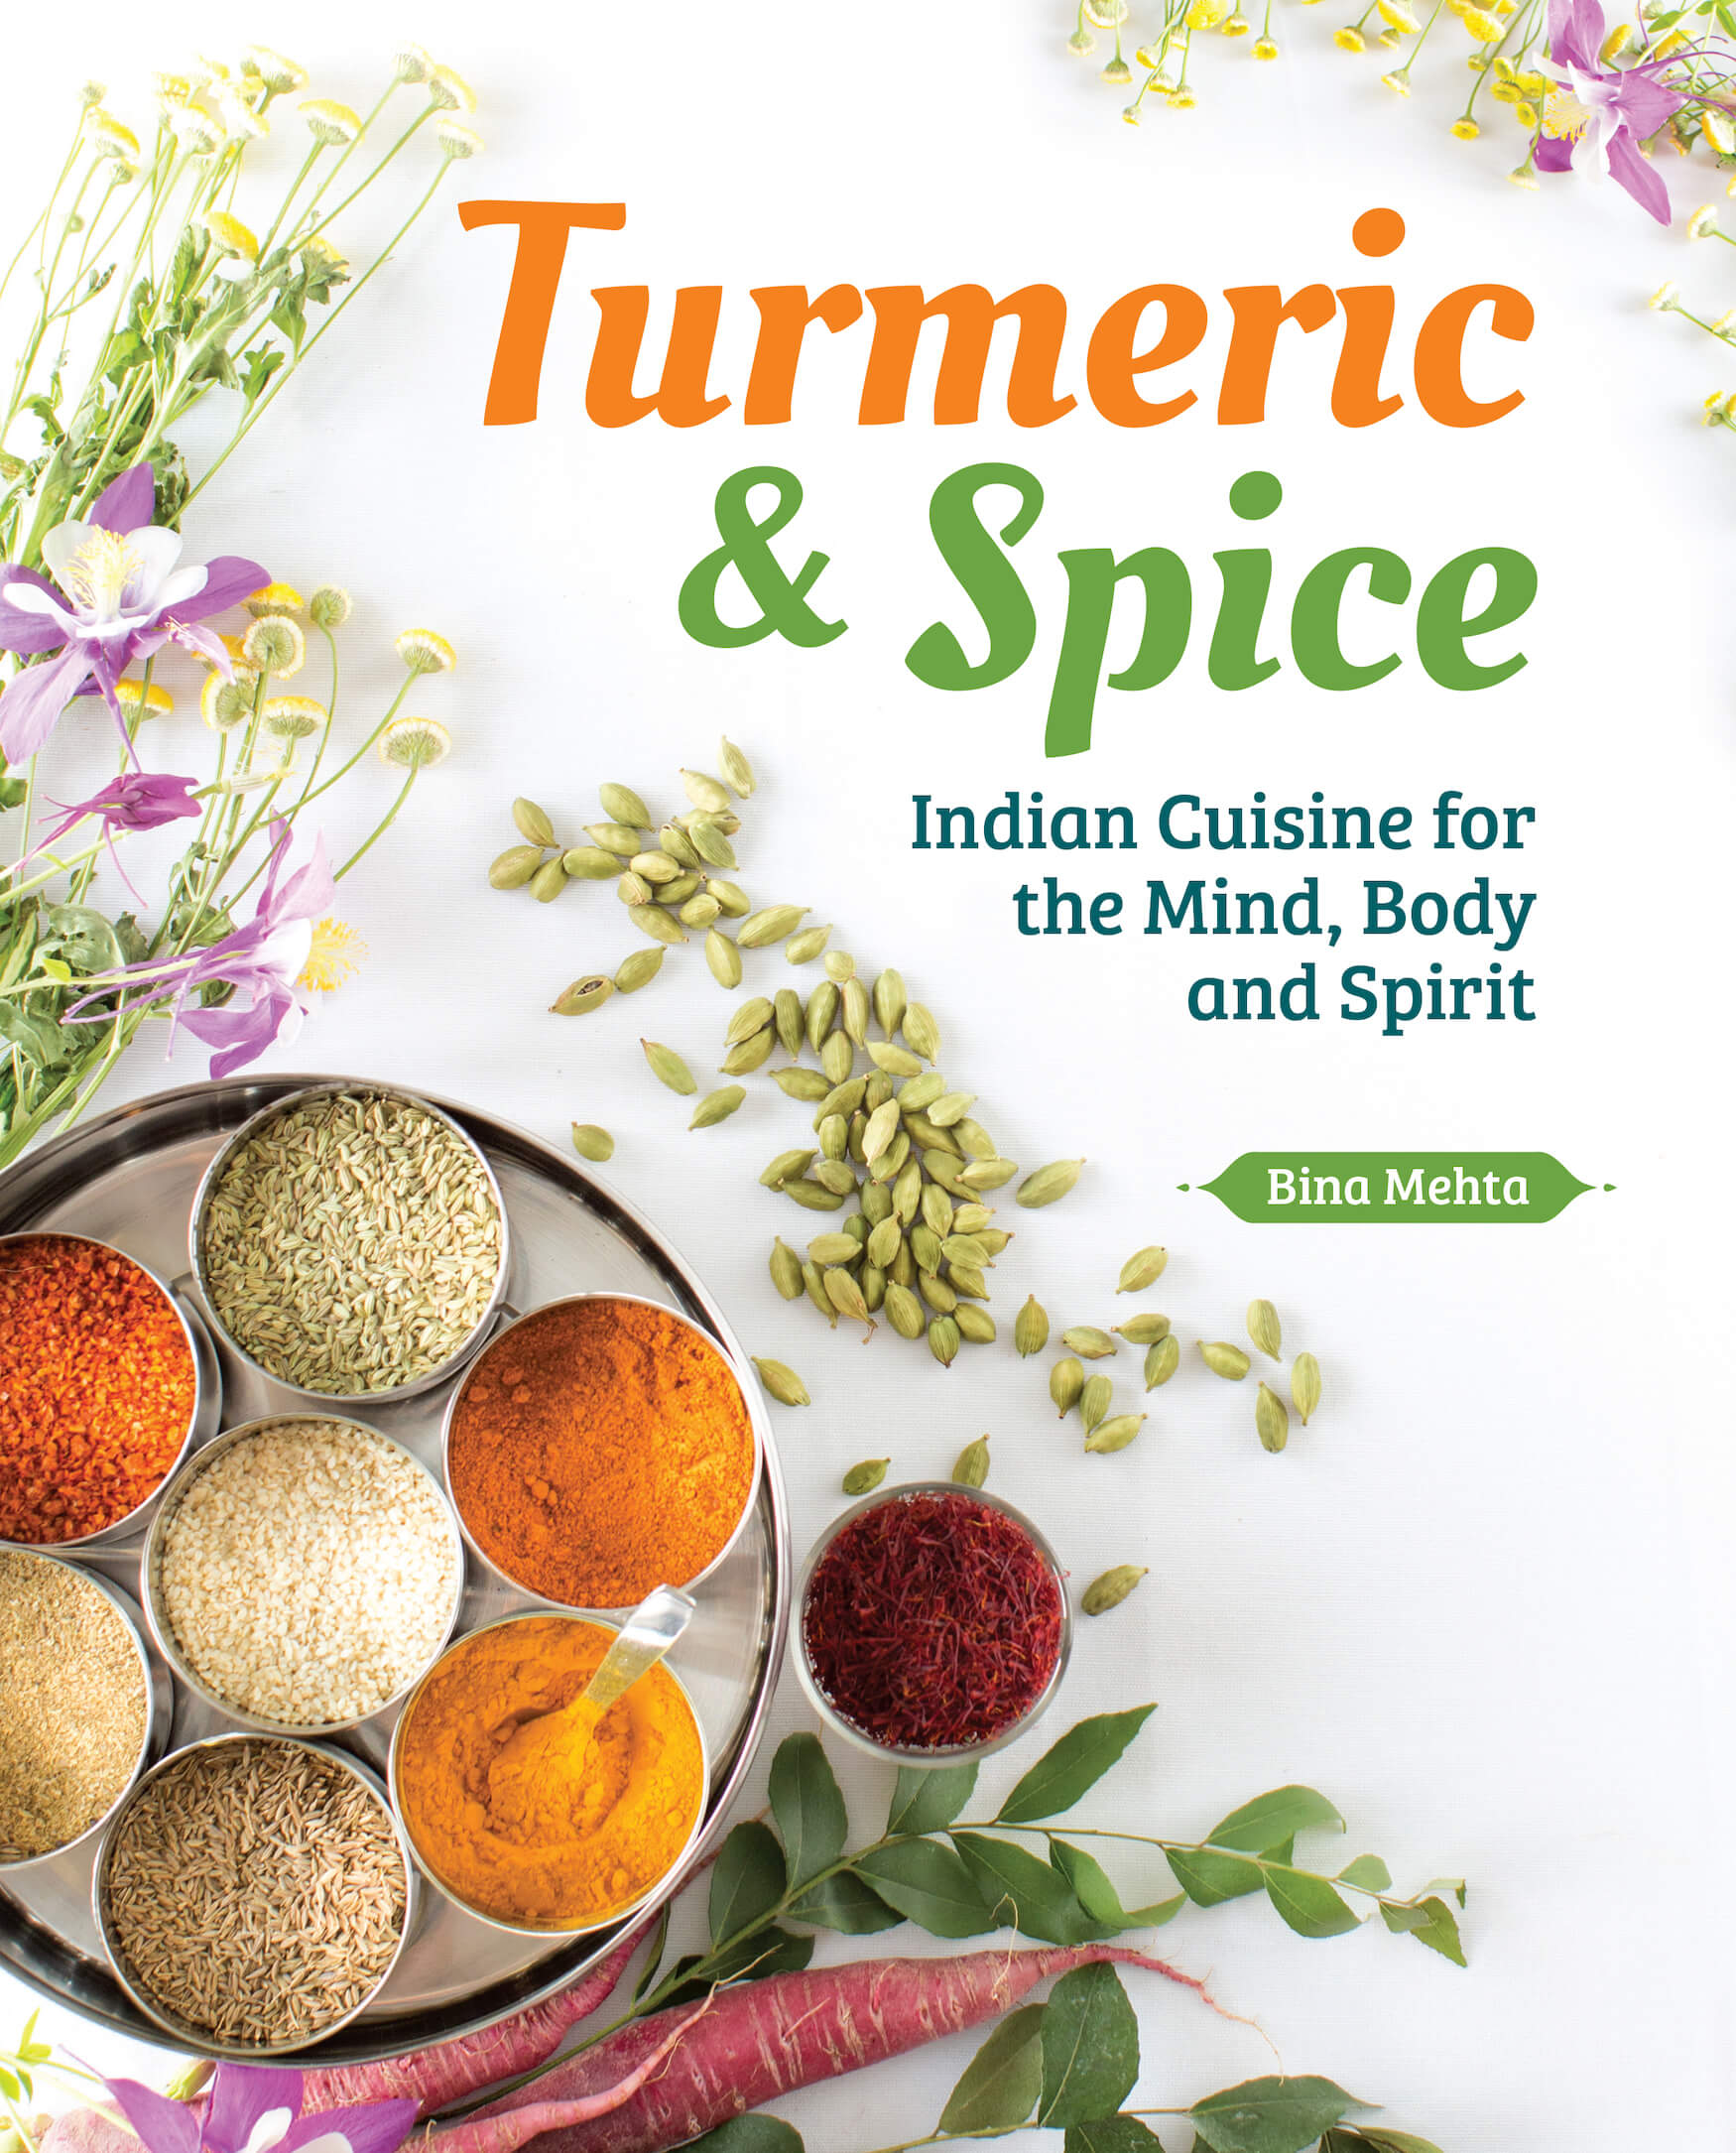 Turmeric&Spice_SoftCoverFINAL3-small